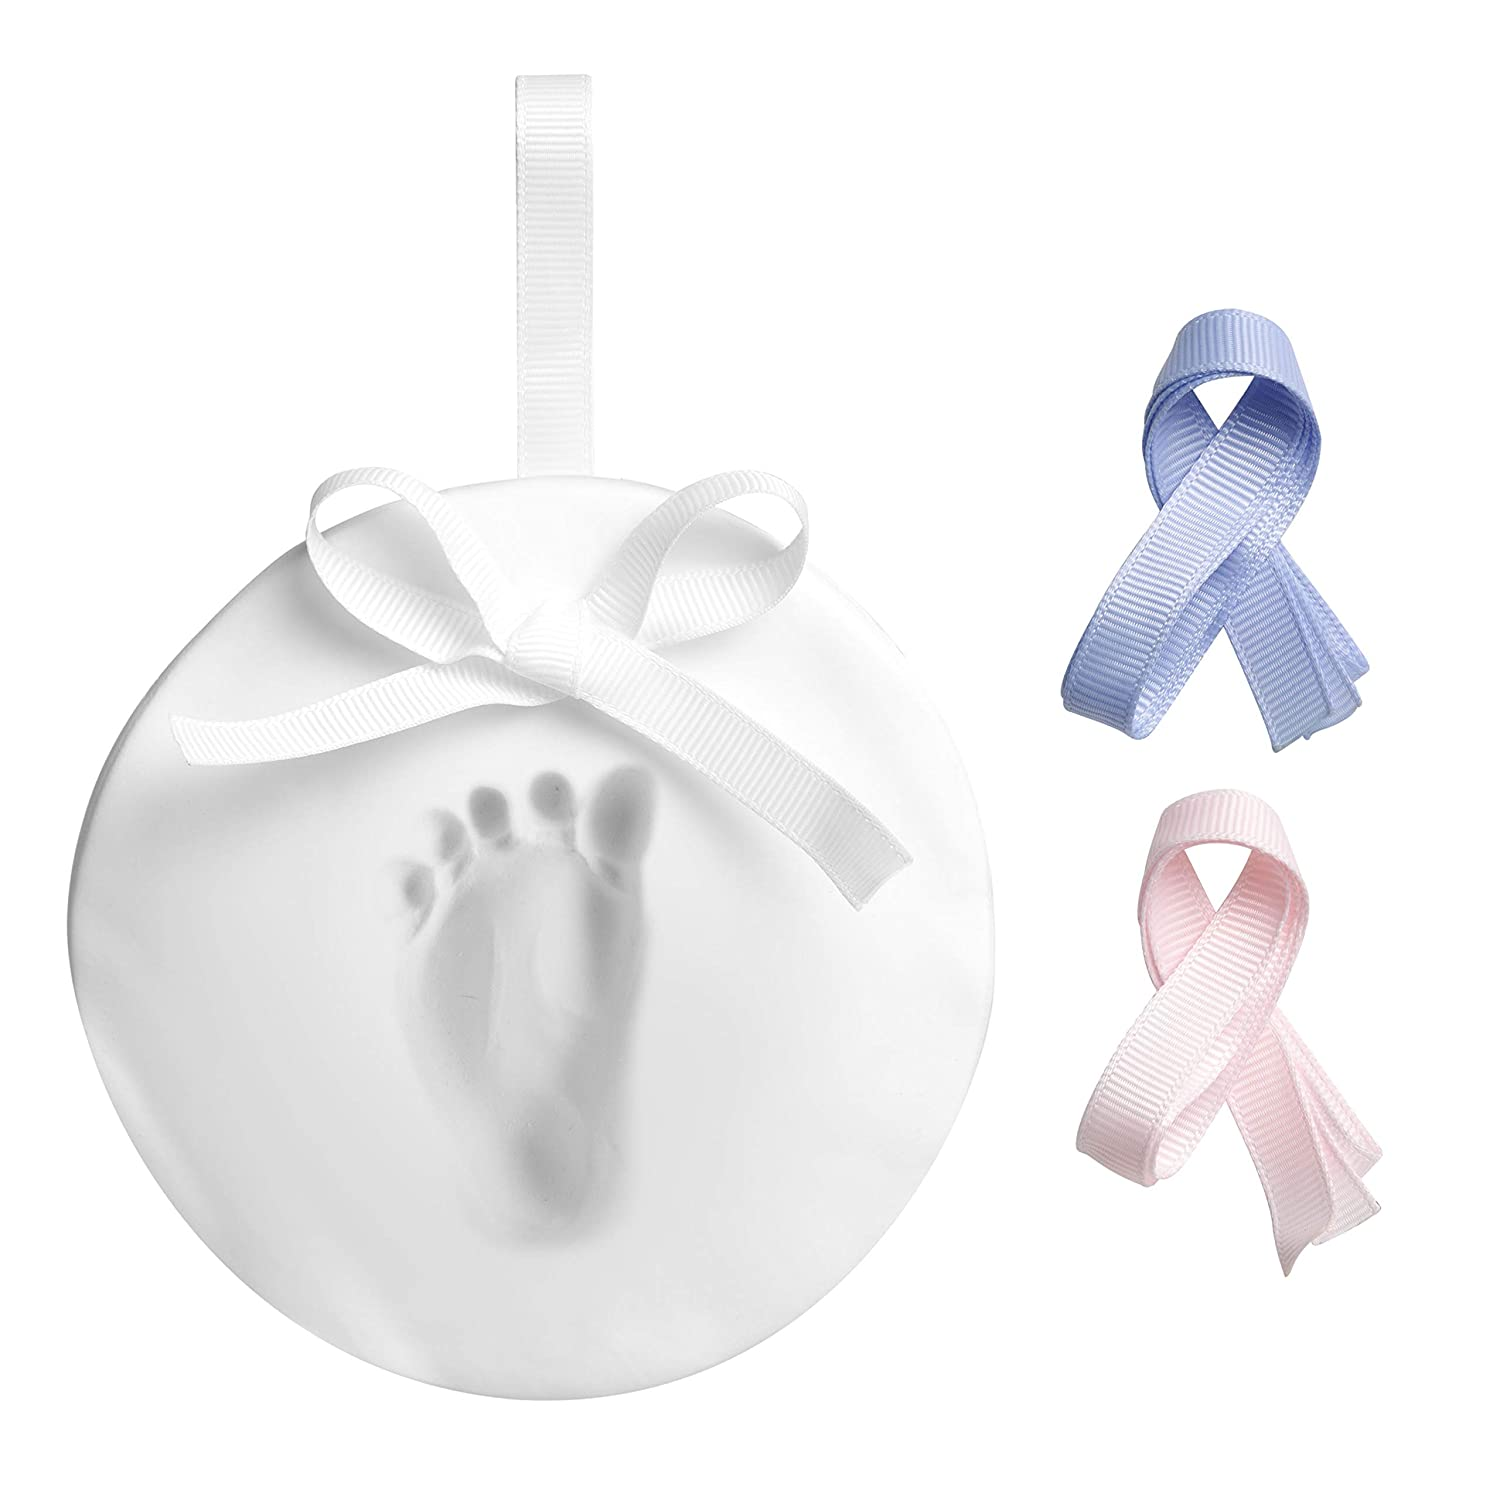 Pearhead New and Improved Babyprints Baby Handprint or Footprint Keepsake Ornament - Makes A Perfect Holiday Gift, Holiday 50010